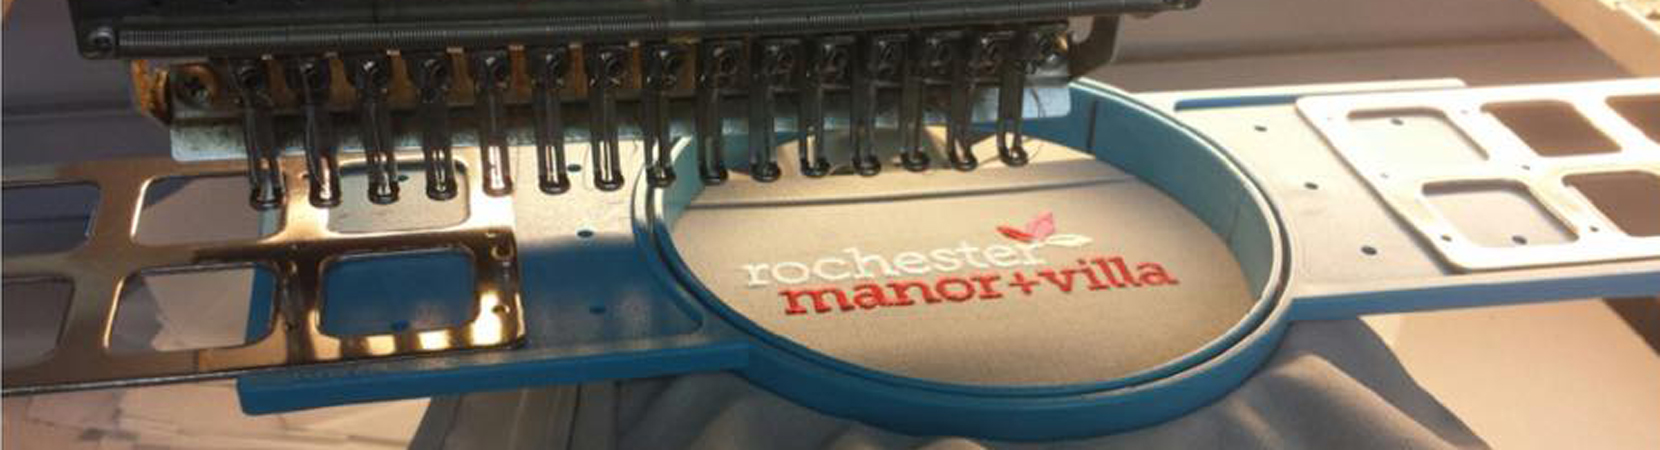 Learn embroidery online